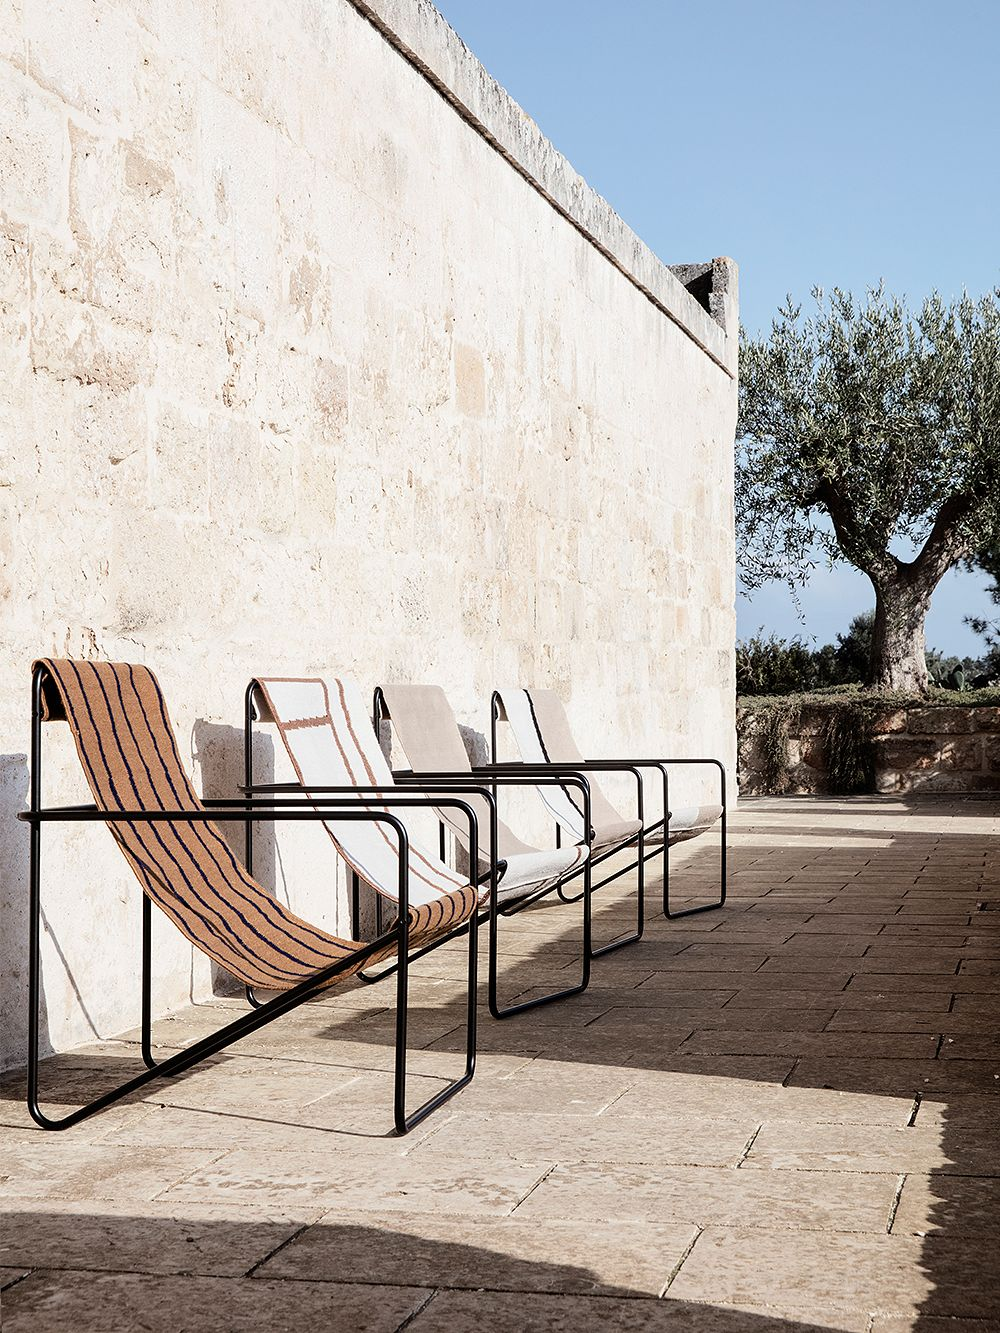 Ferm Living's Desert Lounge chairs outside.